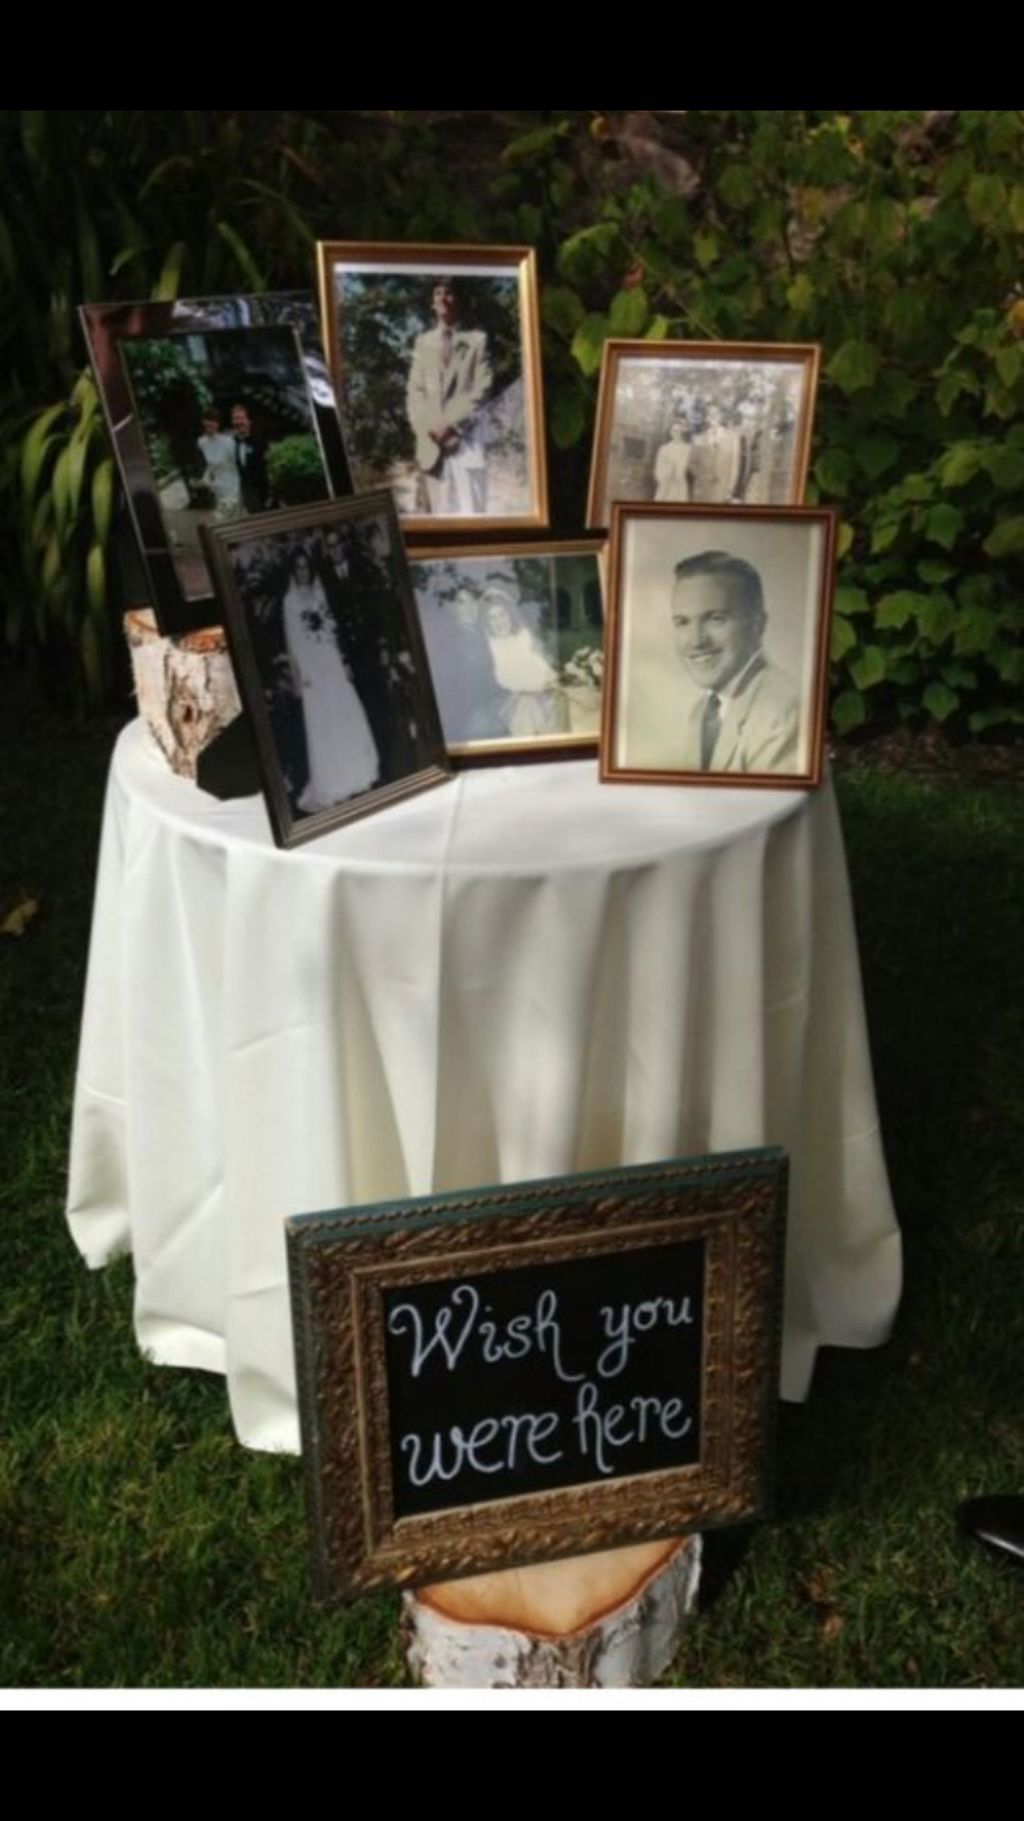 cute and romantic wedding photo display ideas you should try at